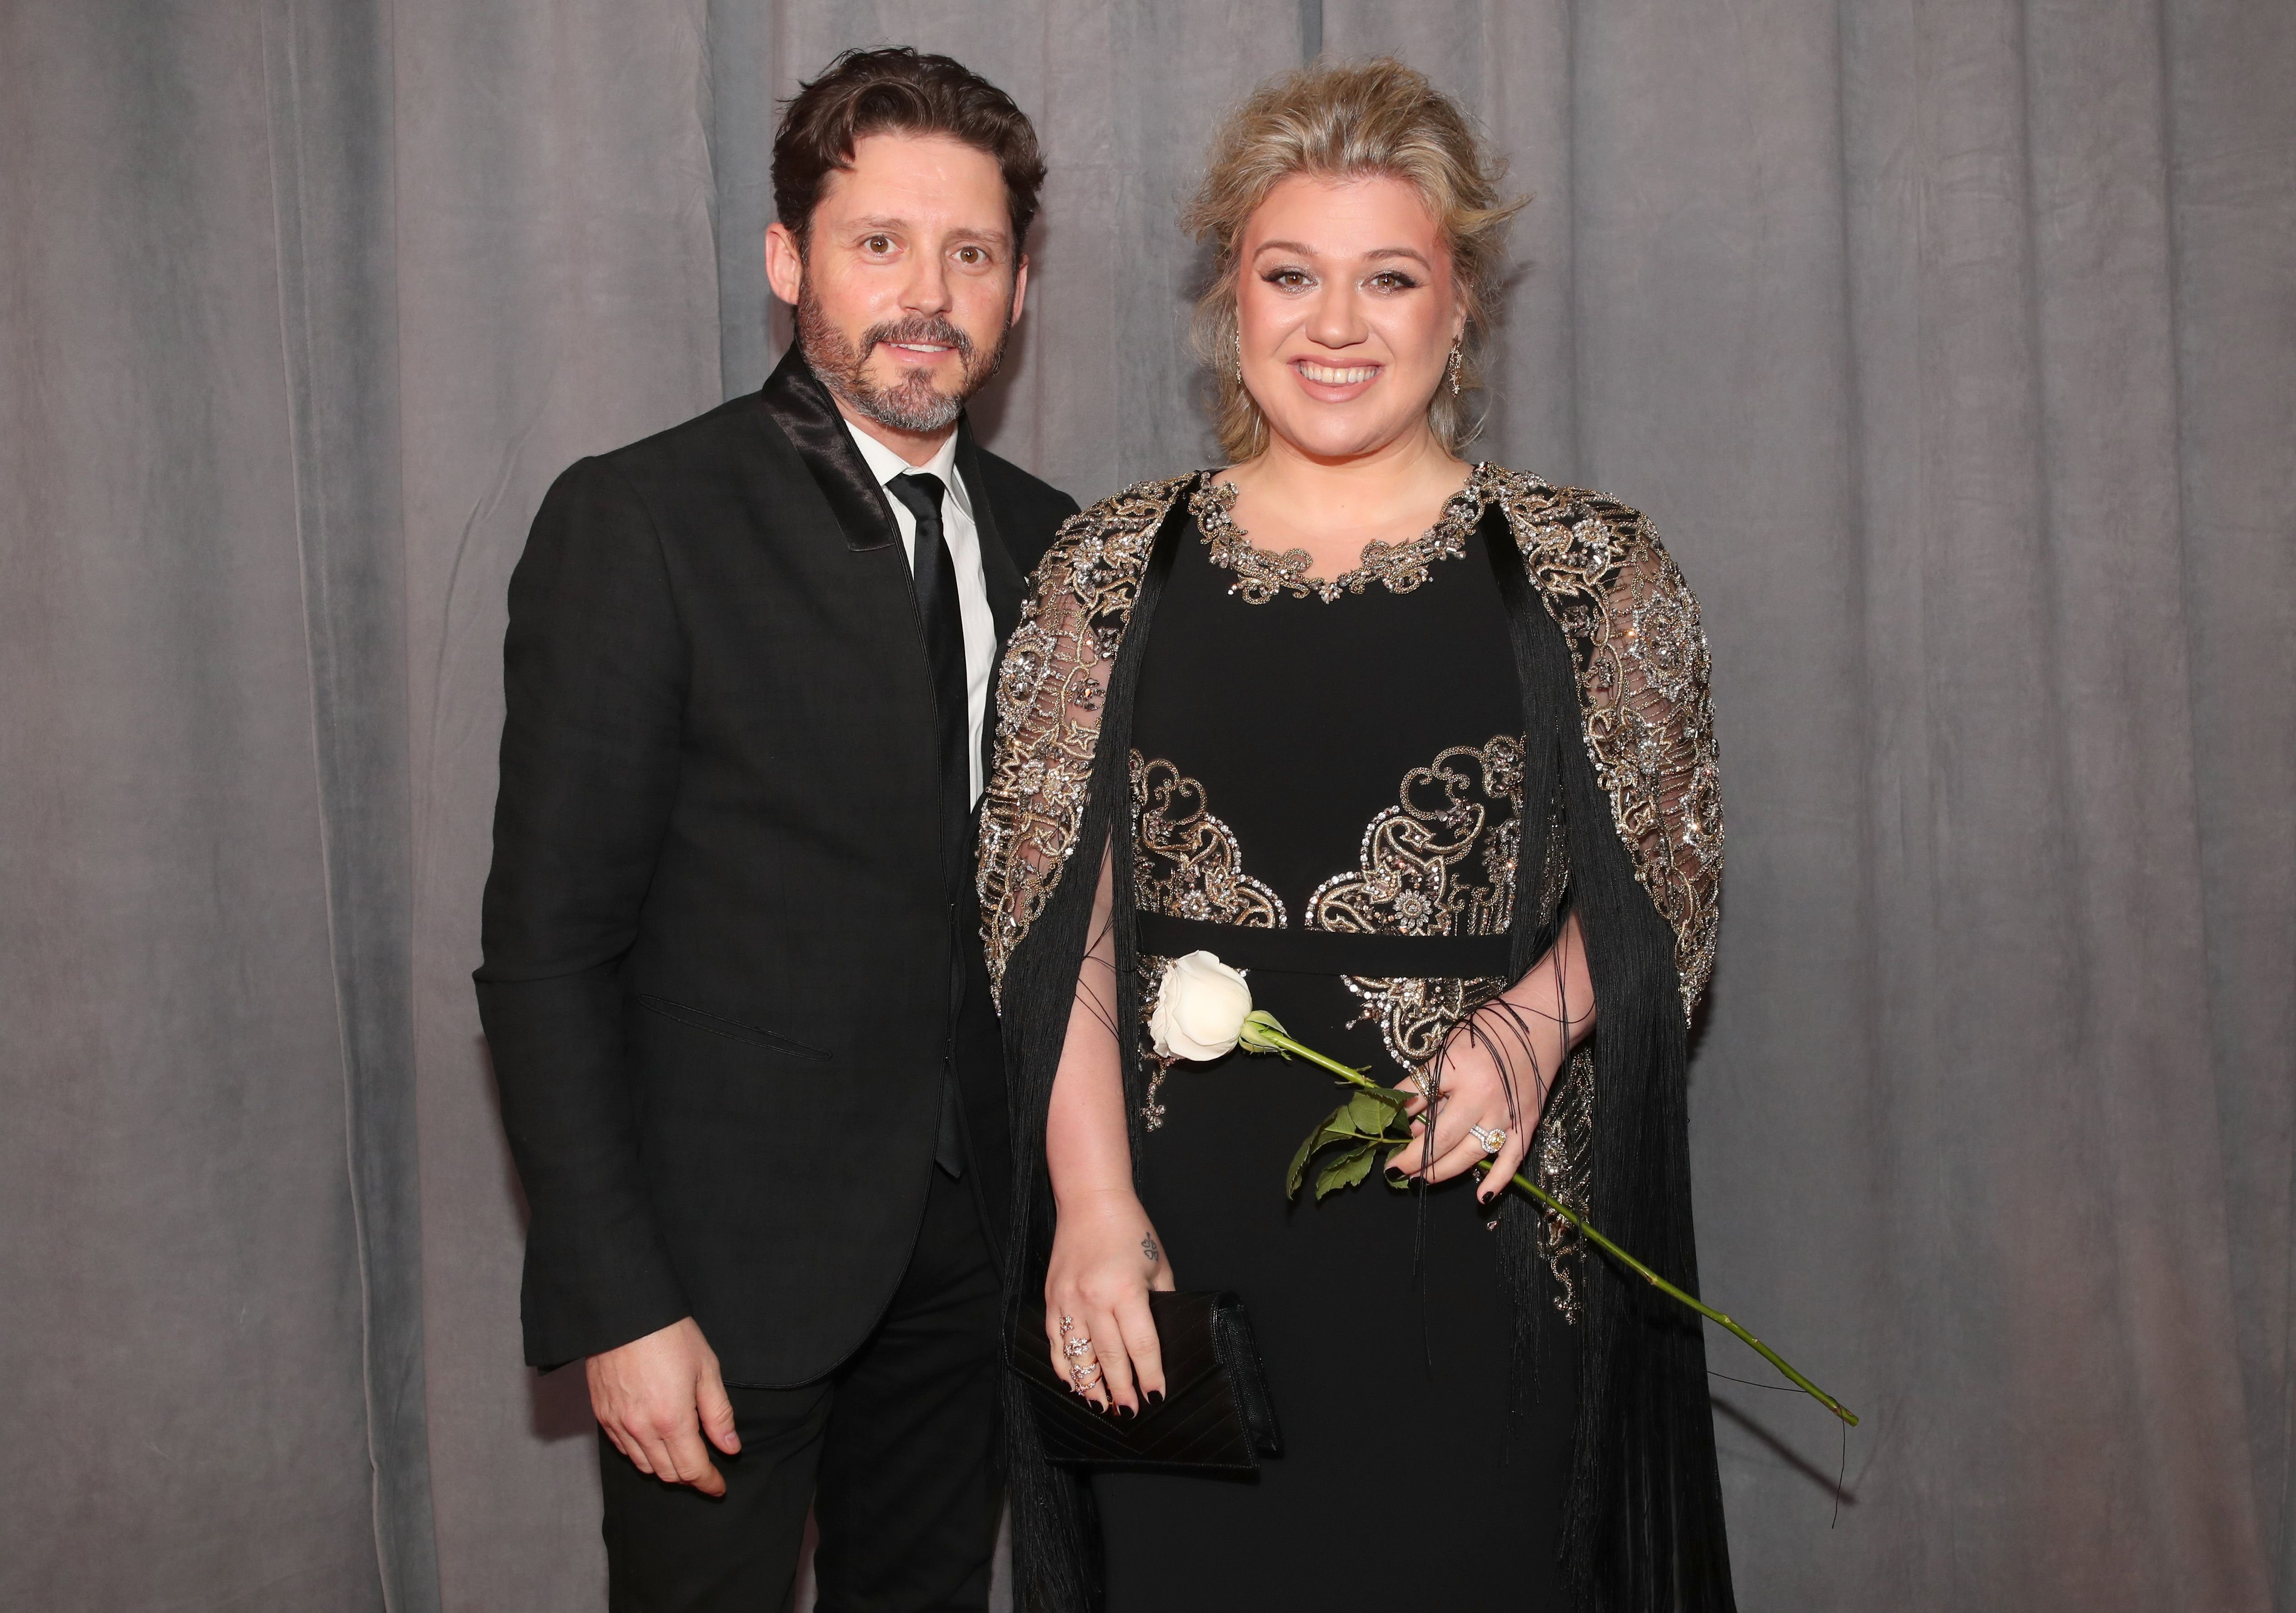 Brandon Blackstock and recording artist Kelly Clarkson at the 60th Annual GRAMMY Awards at Madison Square Garden on January 28, 2018 | Photo: Getty Images